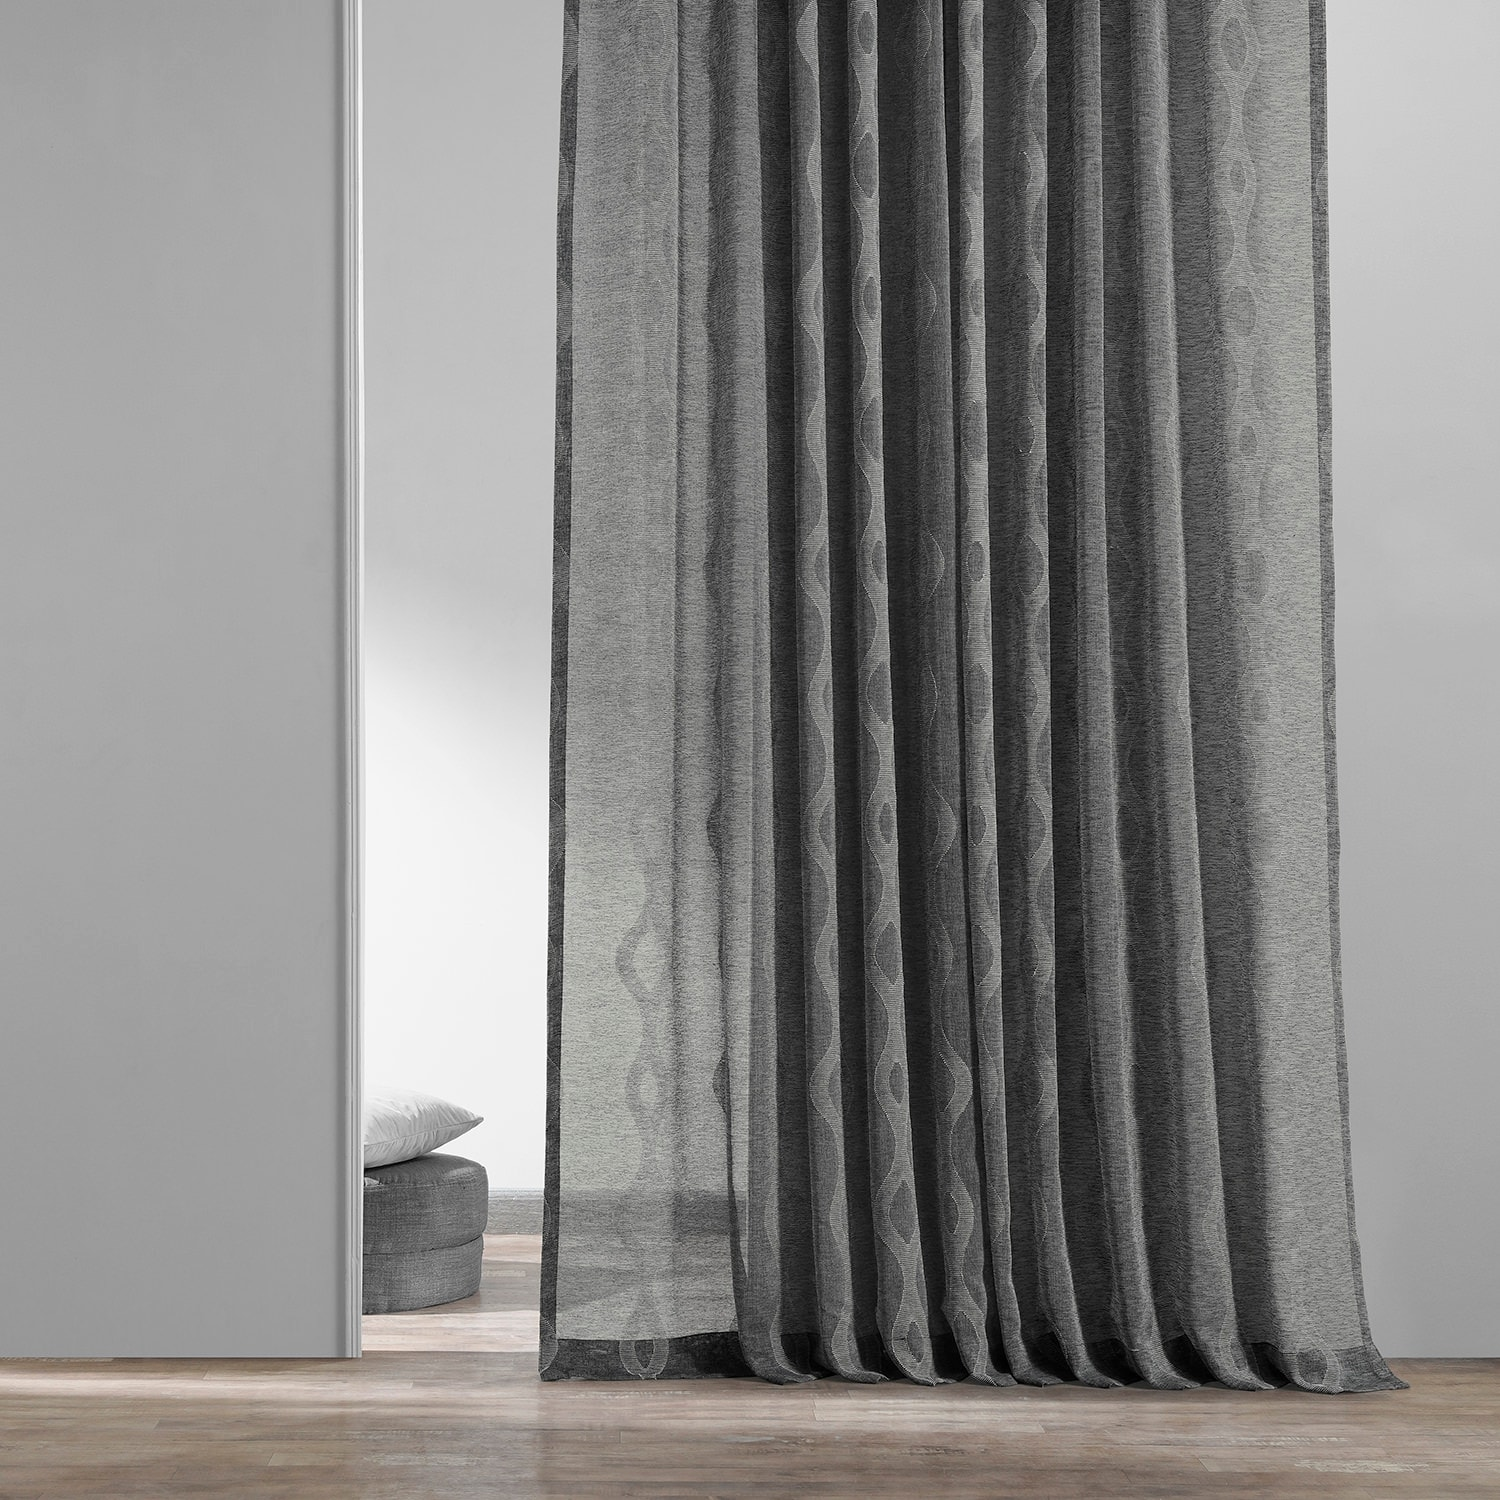 Vega Charcoal Patterned Linen Sheer Curtain